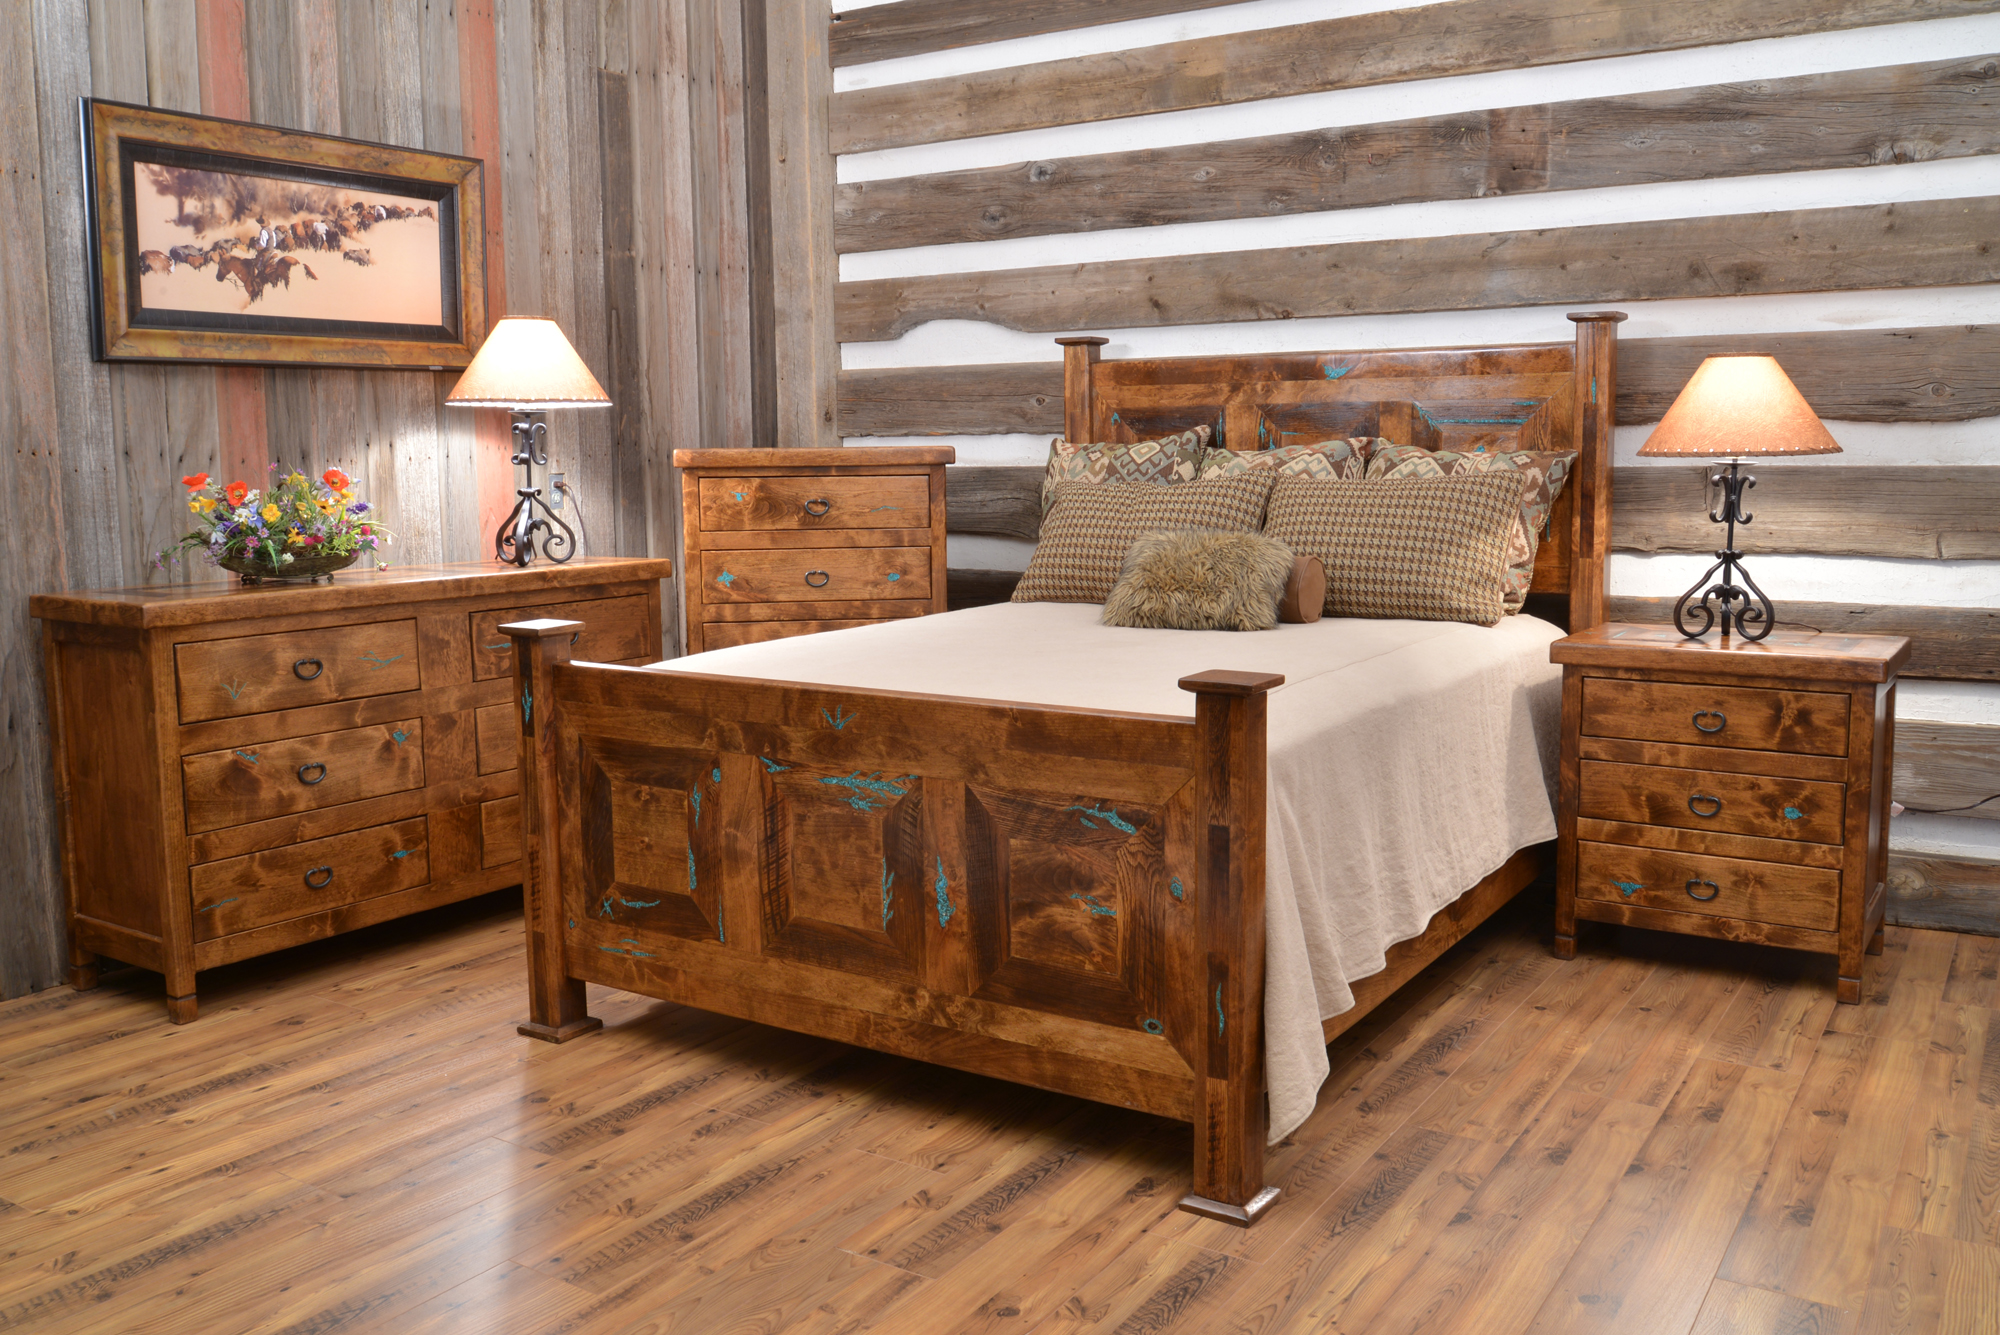 Enticing Rustic Nightstand Plans | Elegant Rustic Nightstand